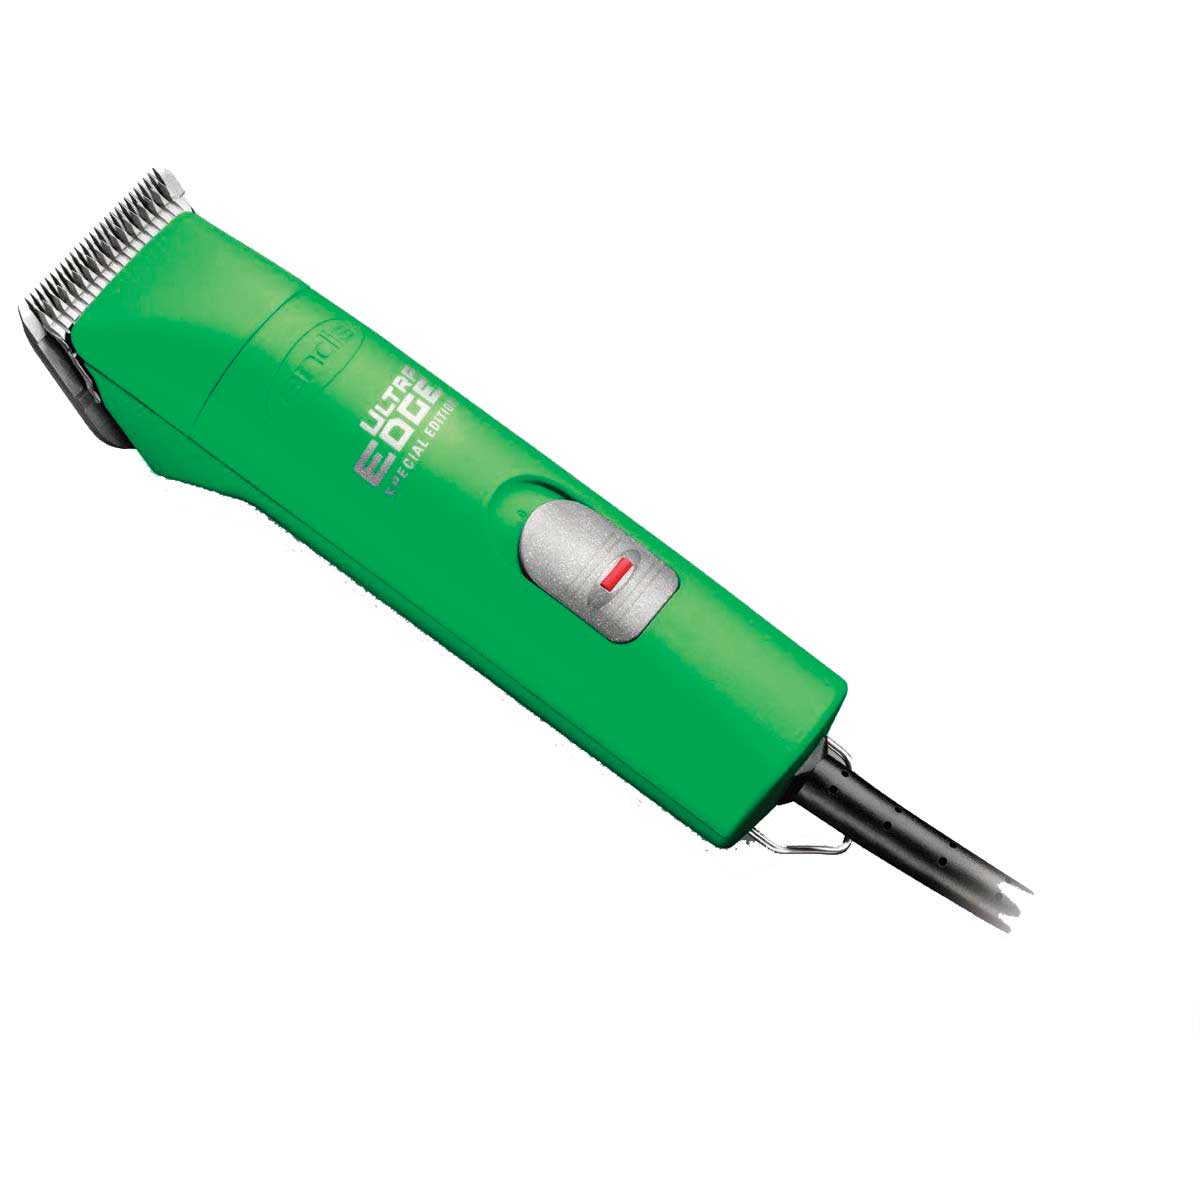 Andis AGC Super 2-Speed Clipper with 10 Blade Lime Green Special Edition at Ryan's Pet Supplies